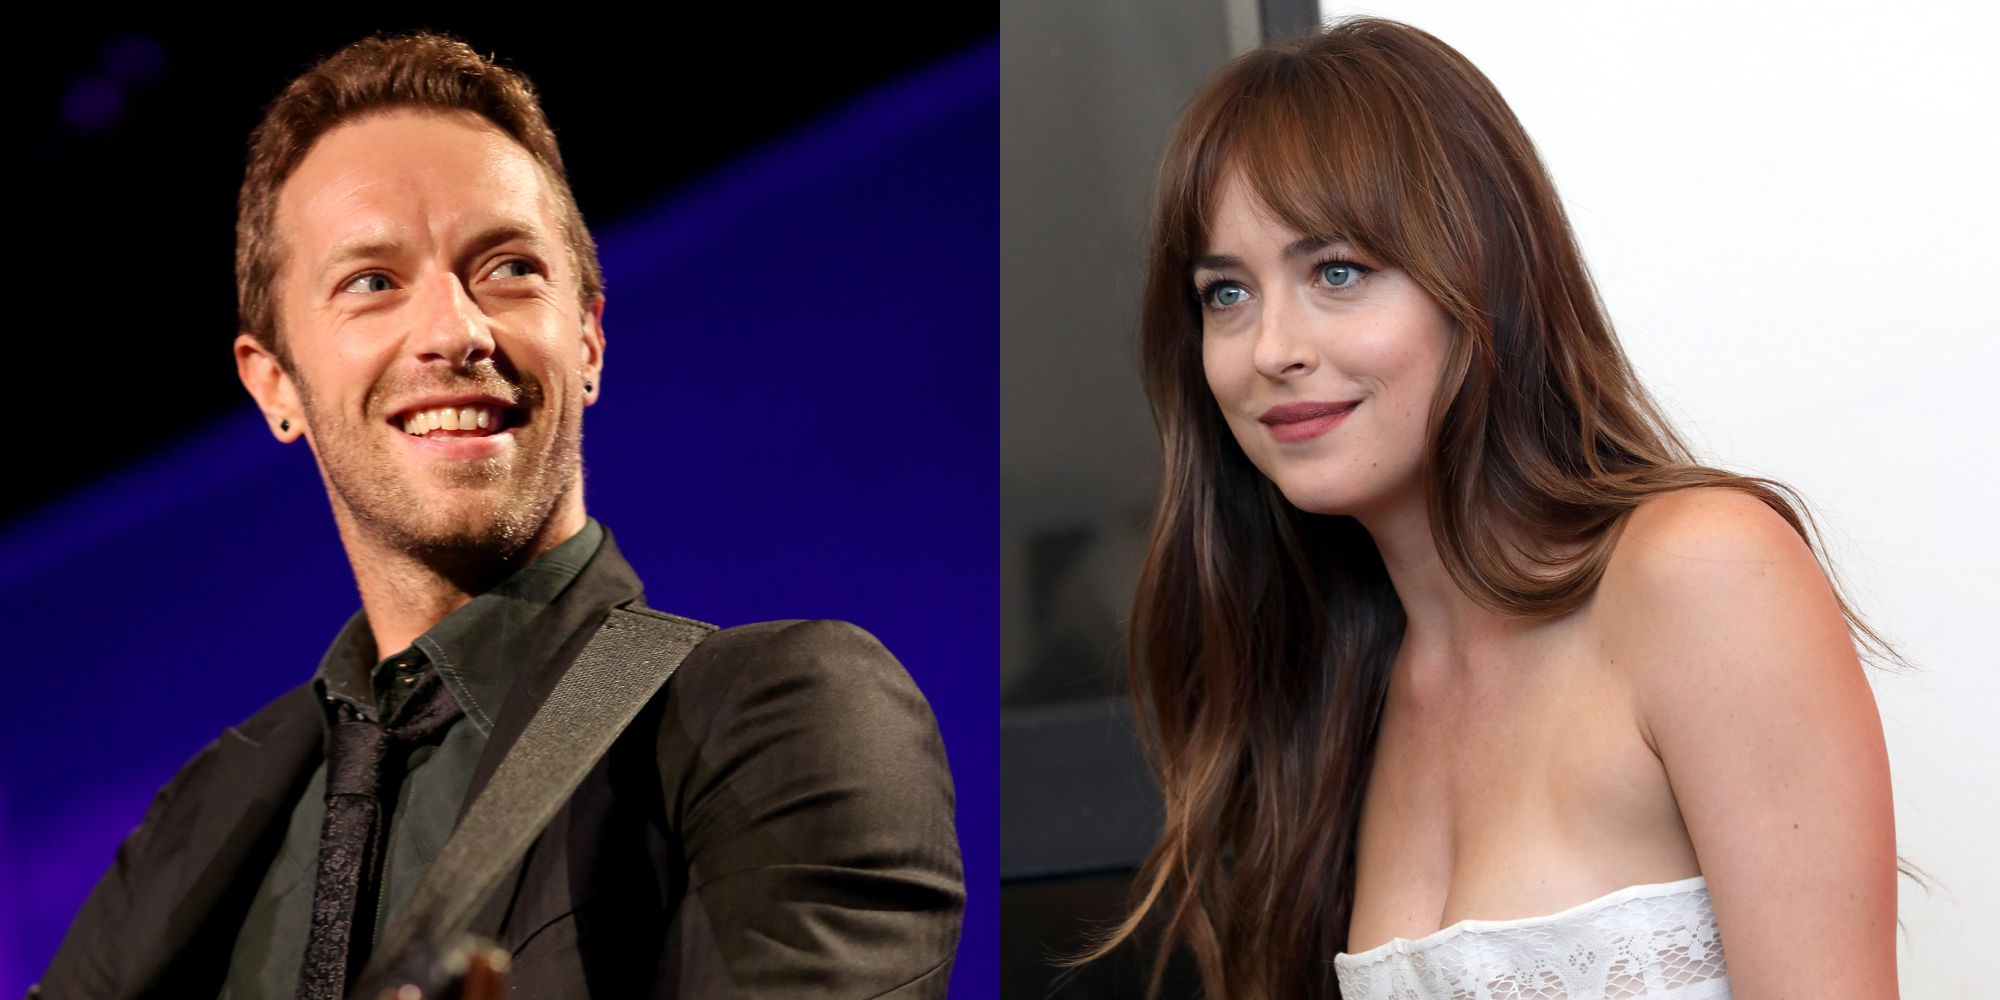 The Complete Relationship Timeline of Dakota Johnson and Chris Martin